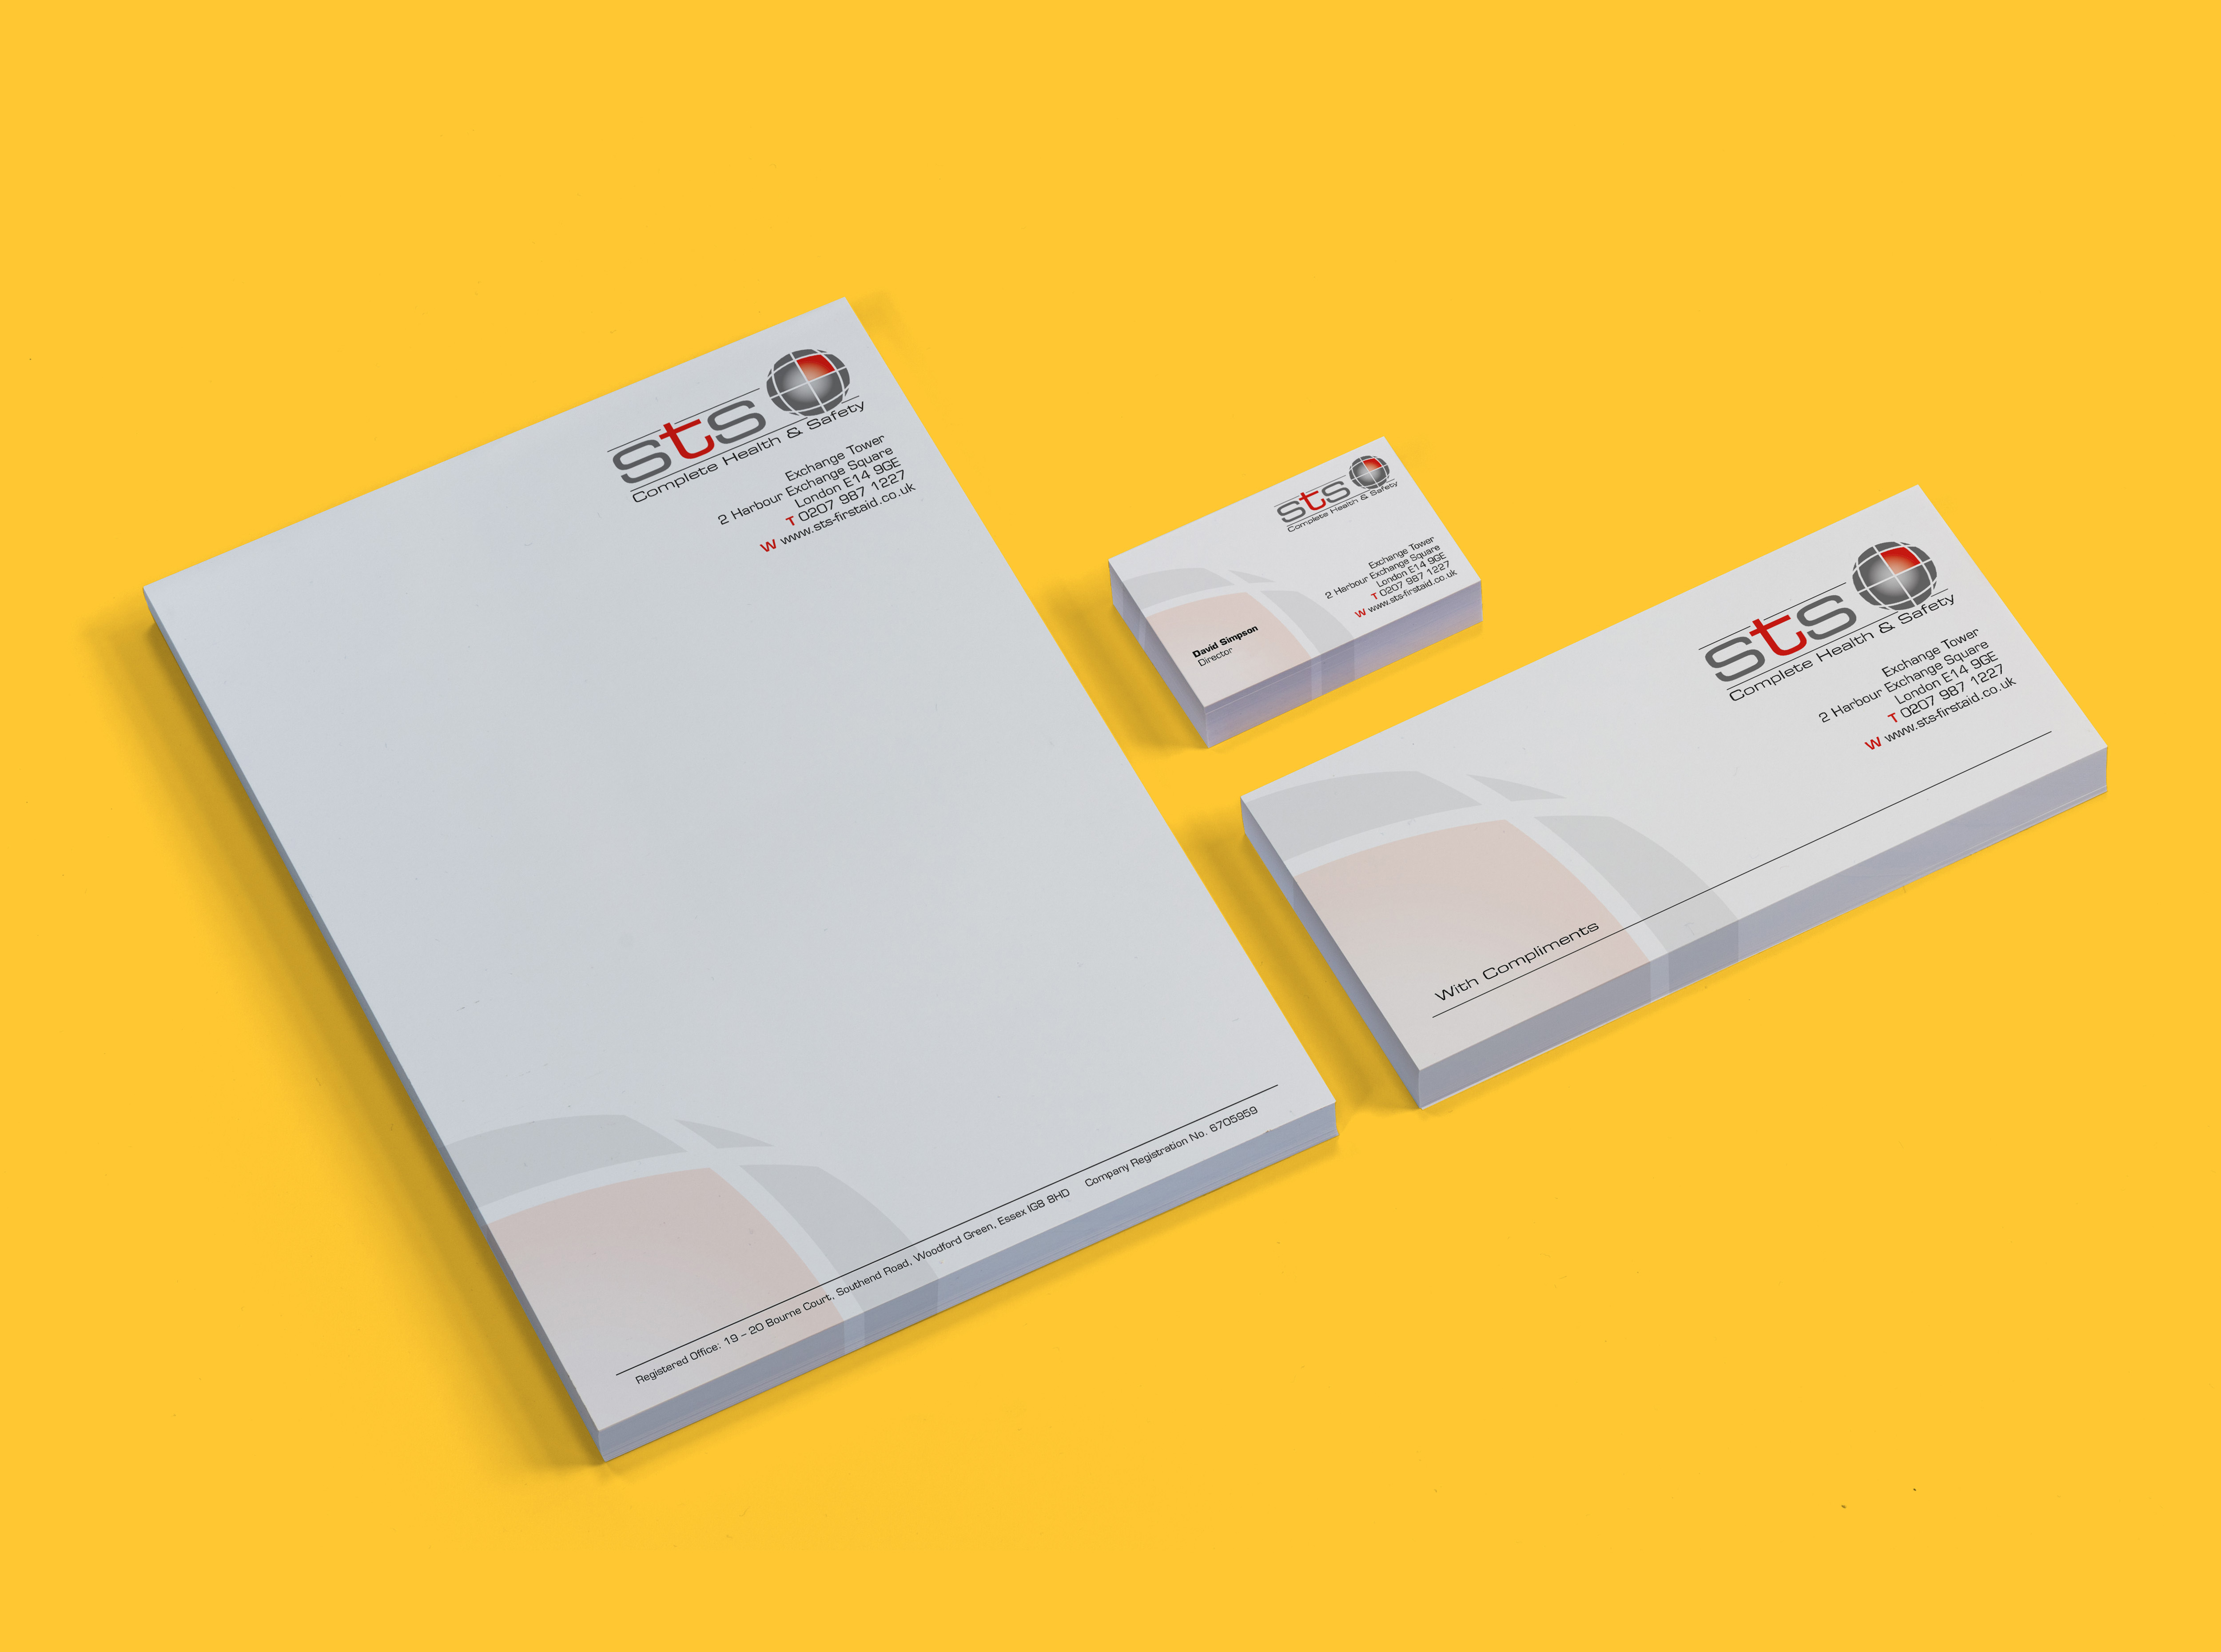 Stationary is a great way to impress clients